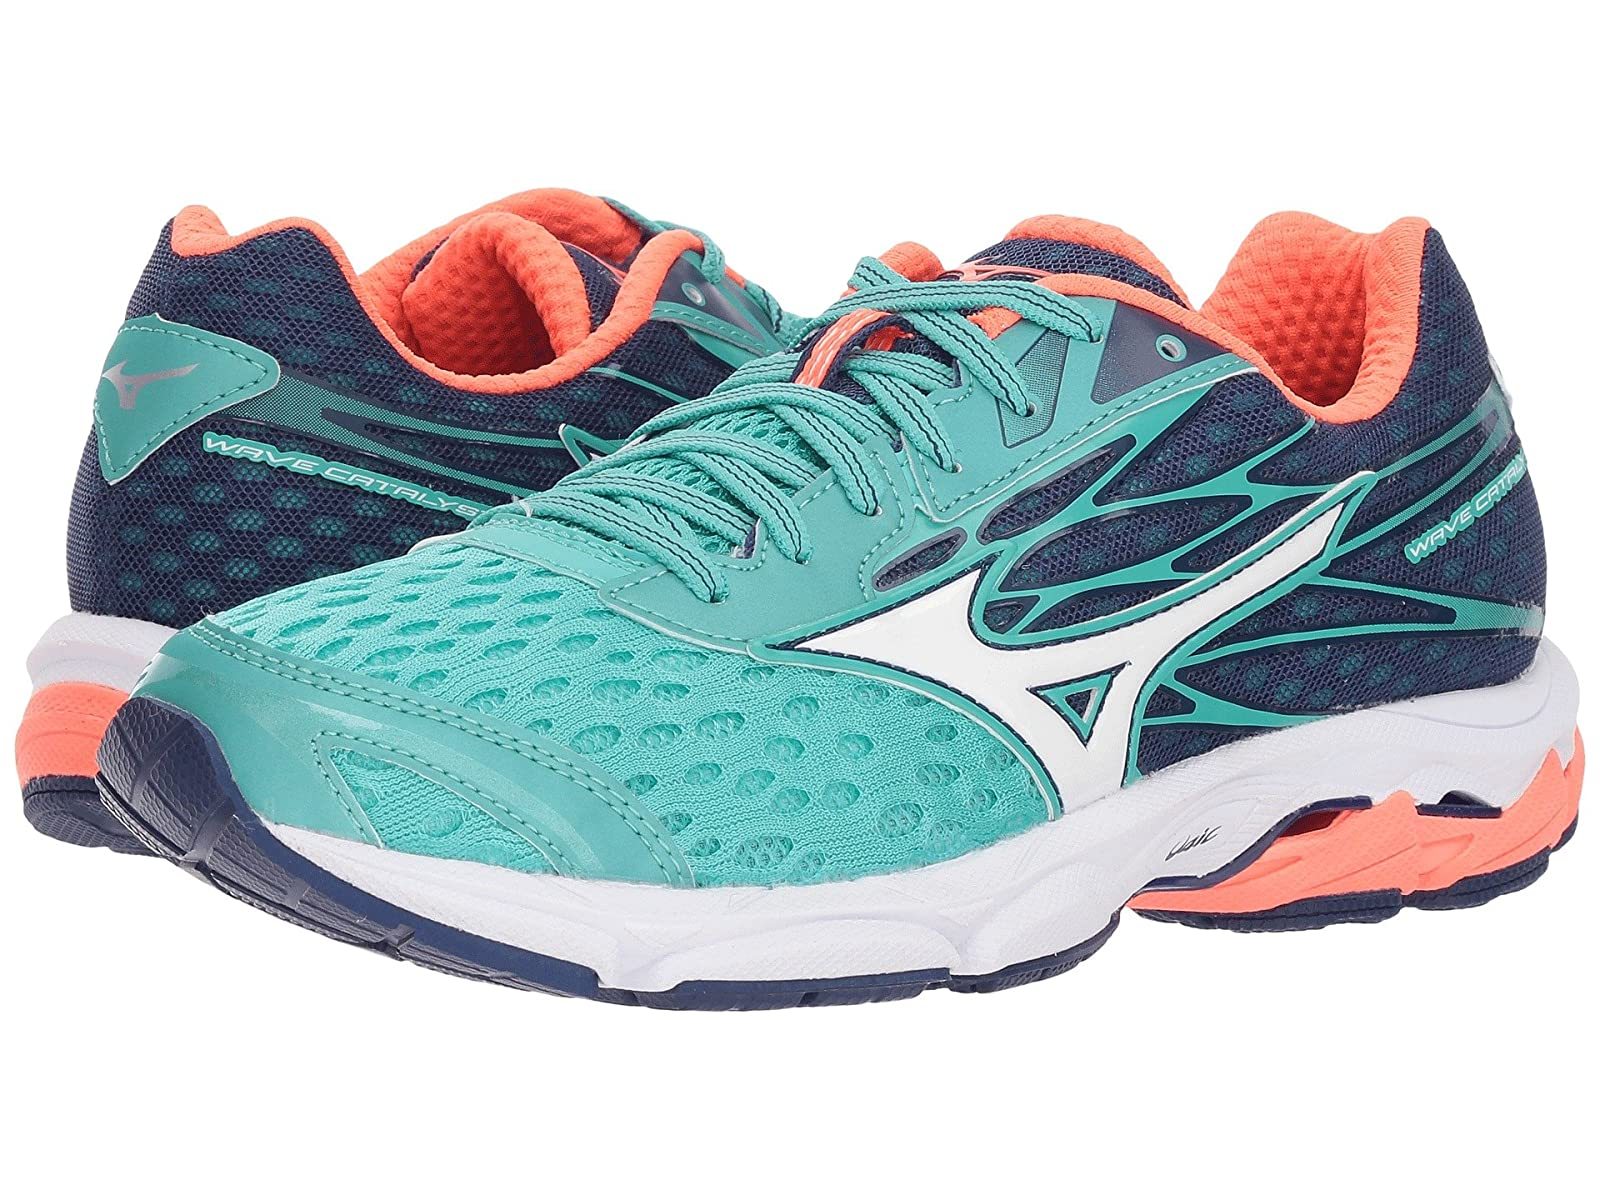 Mizuno Wave Catalyst 2Cheap and distinctive eye-catching shoes